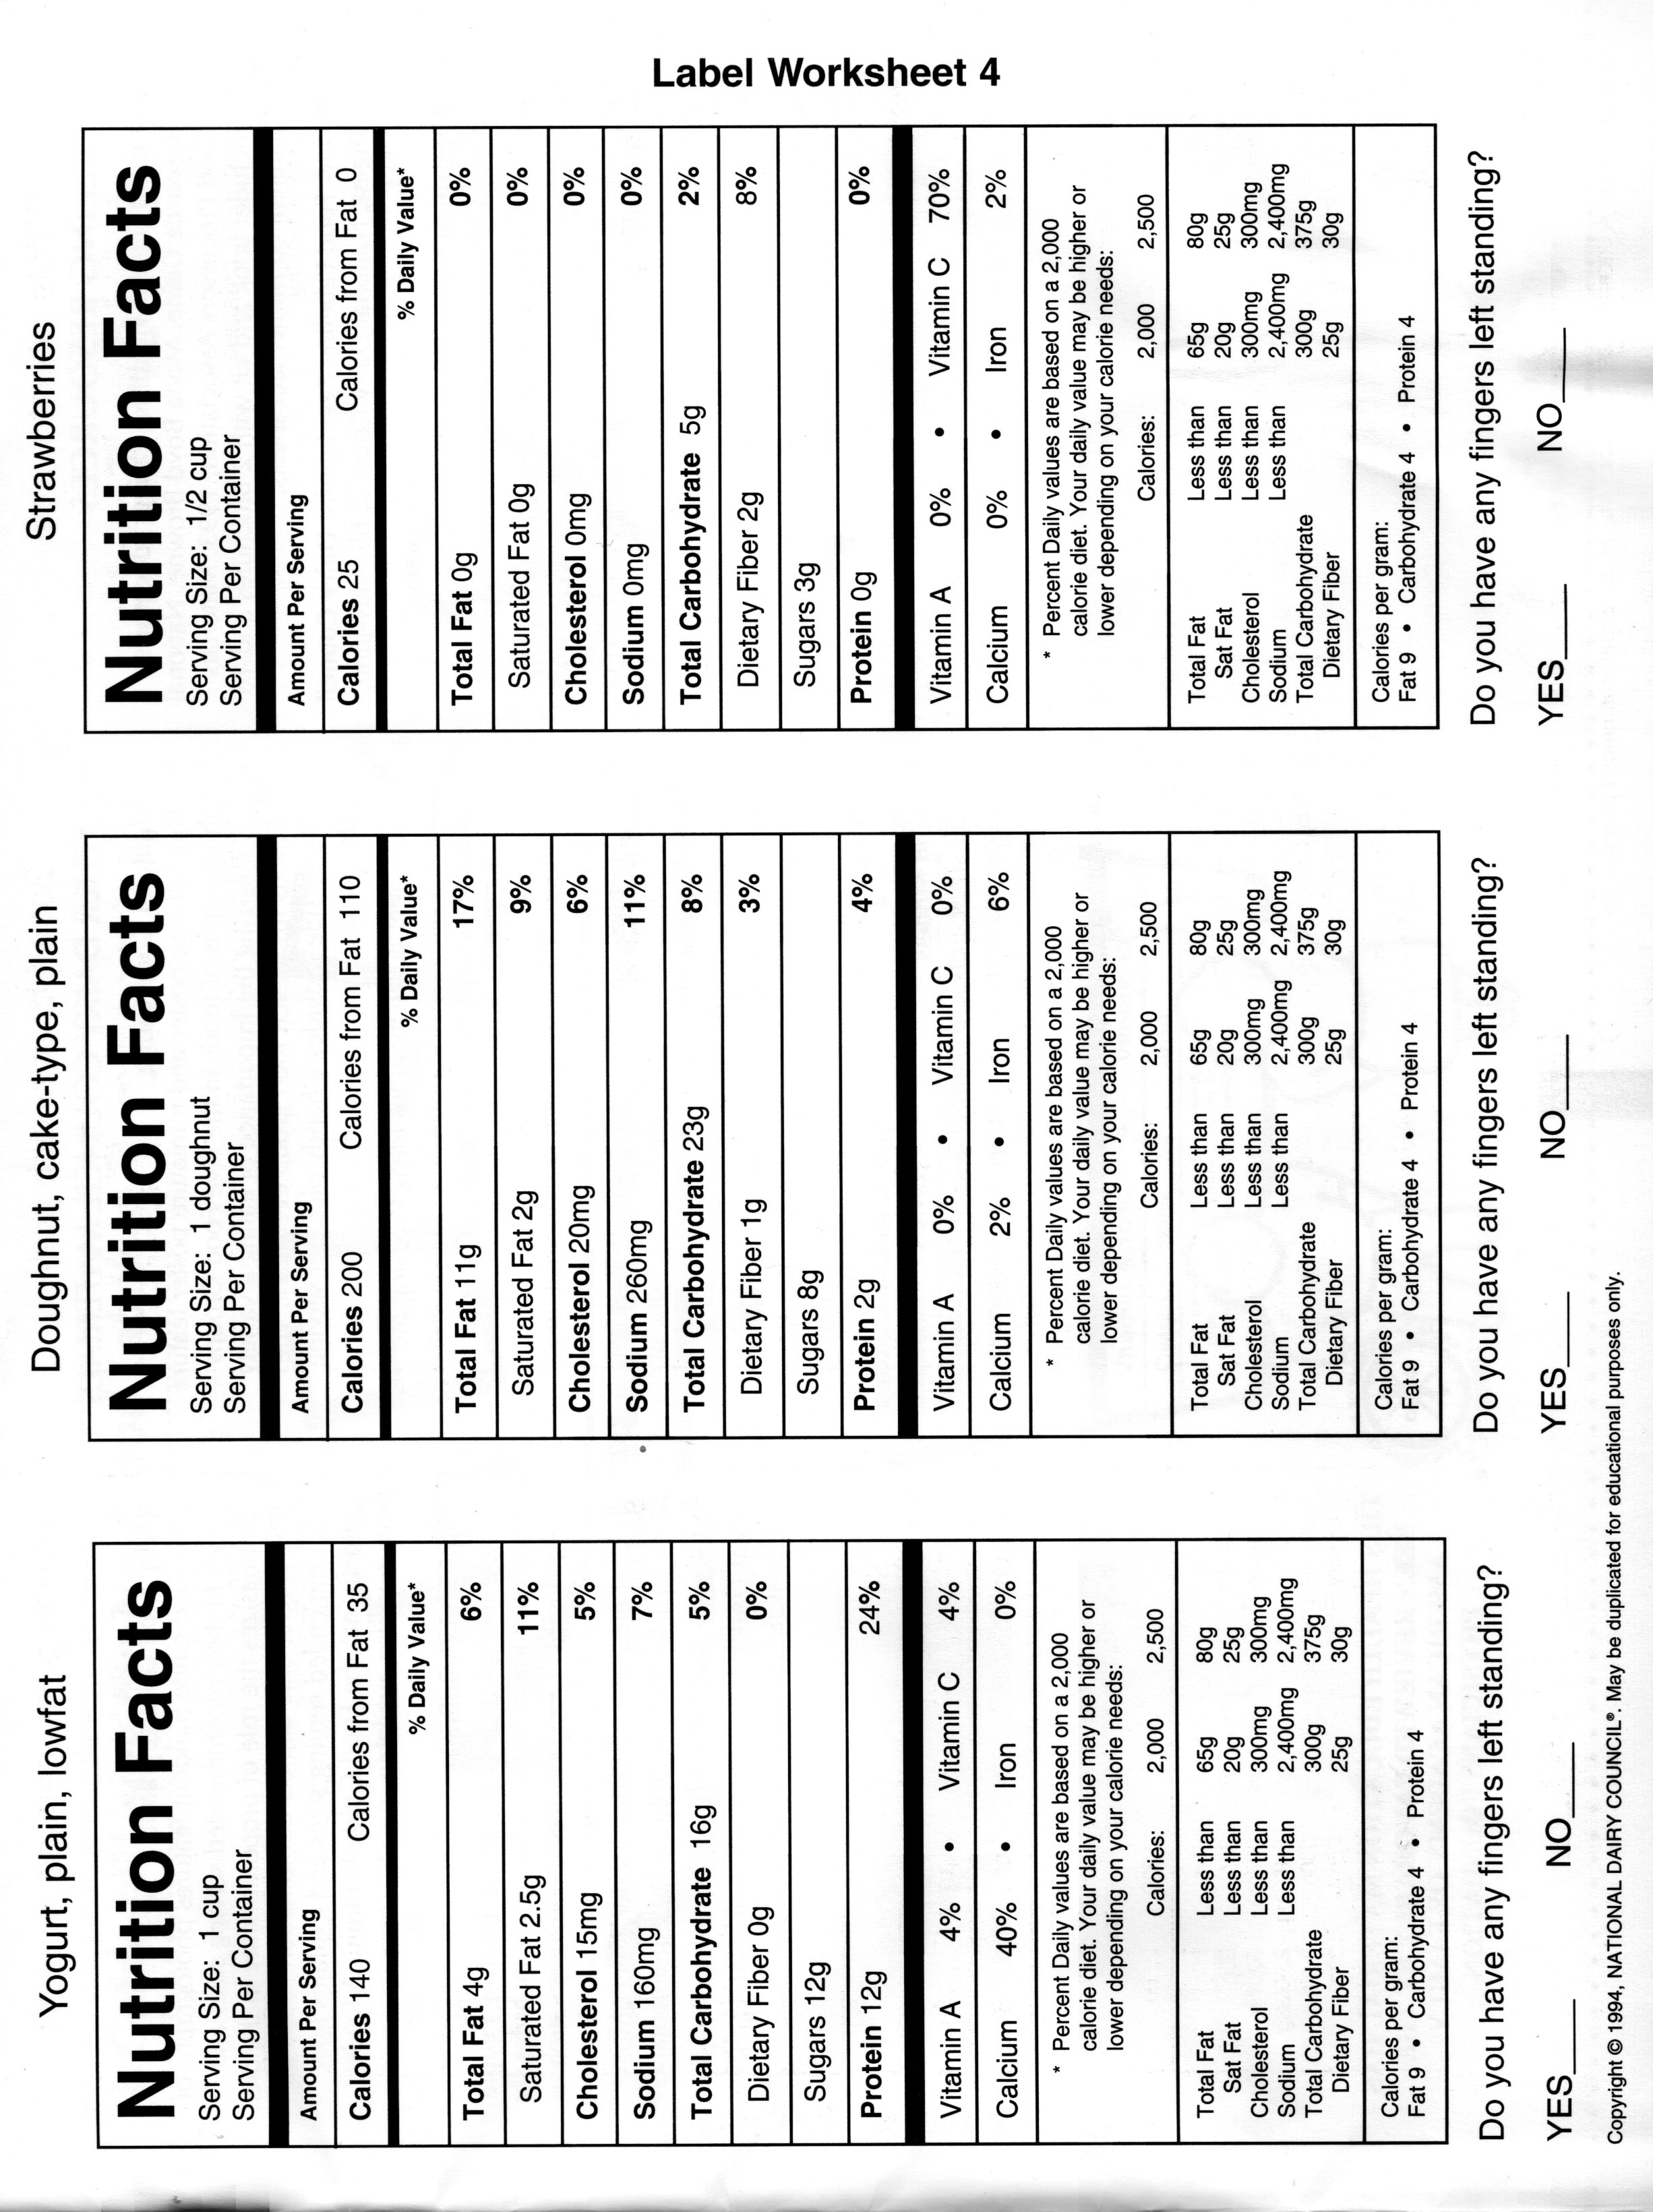 29 Macromolecules And Nutrition Label Worksheet Answers